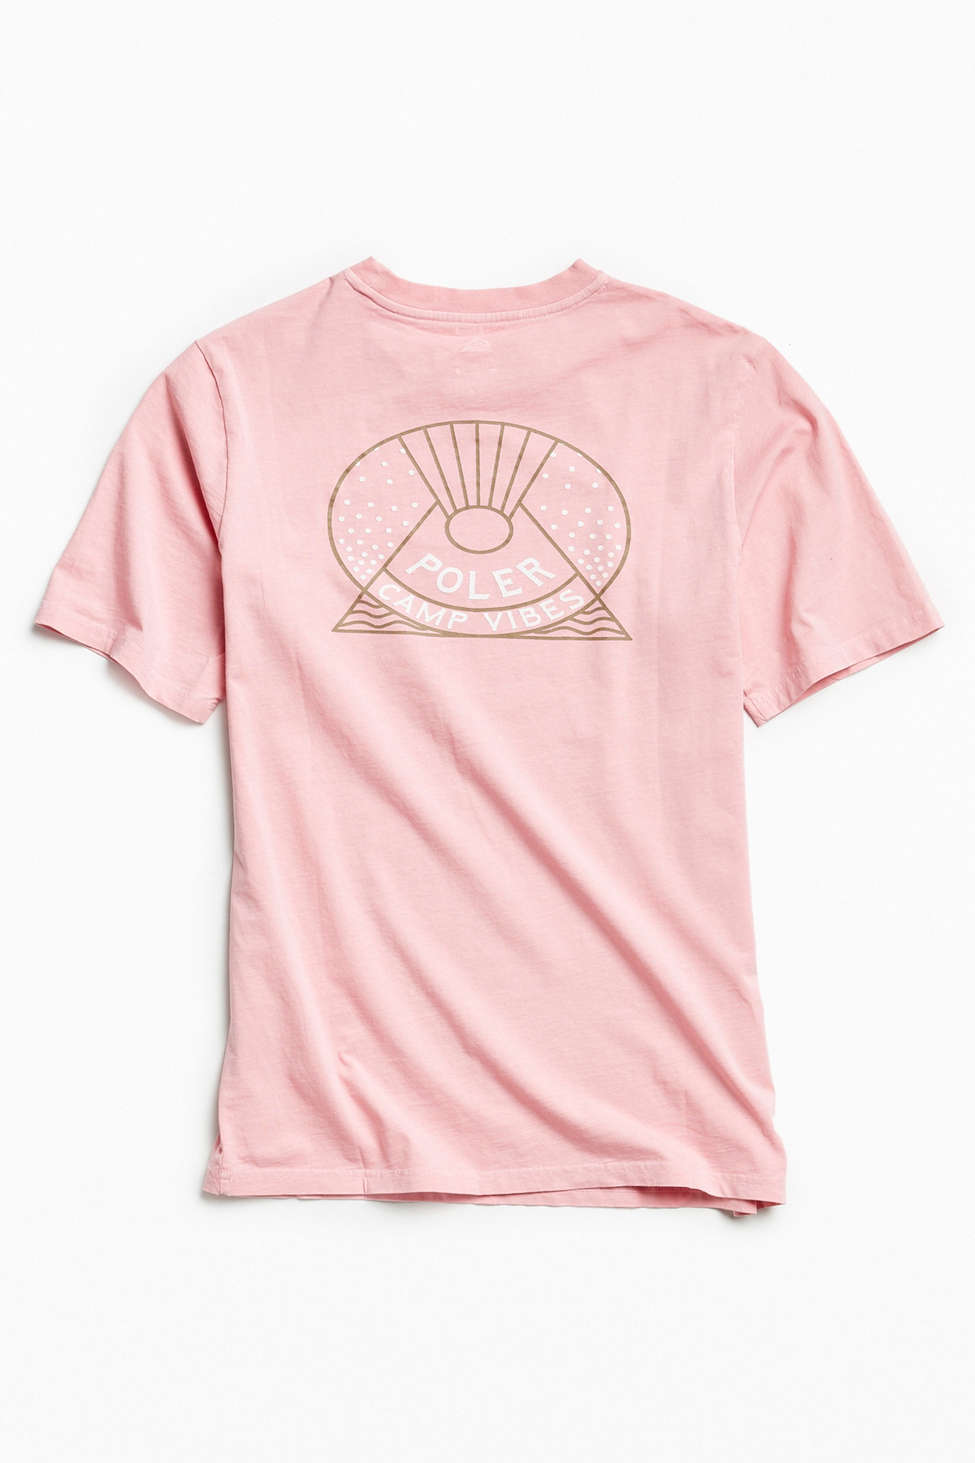 Poler Snow Globe Camp Vibe Tee Urban Outfitters